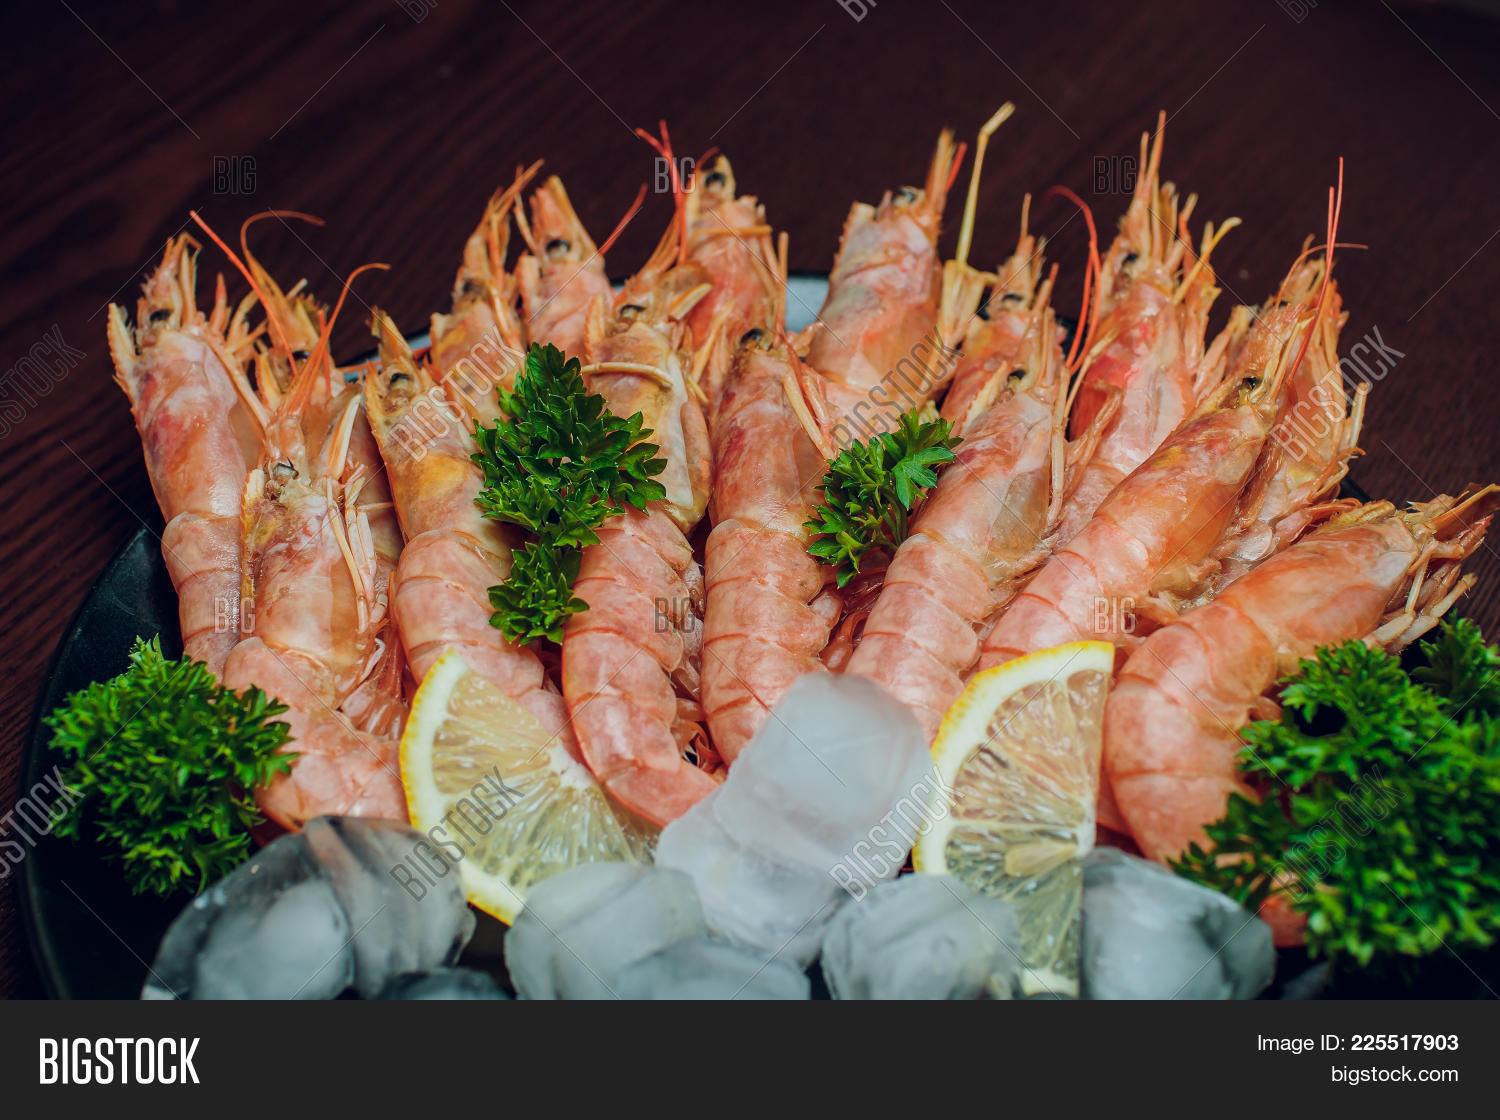 Argentine Raw Shrimp Image Photo Free Trial Bigstock